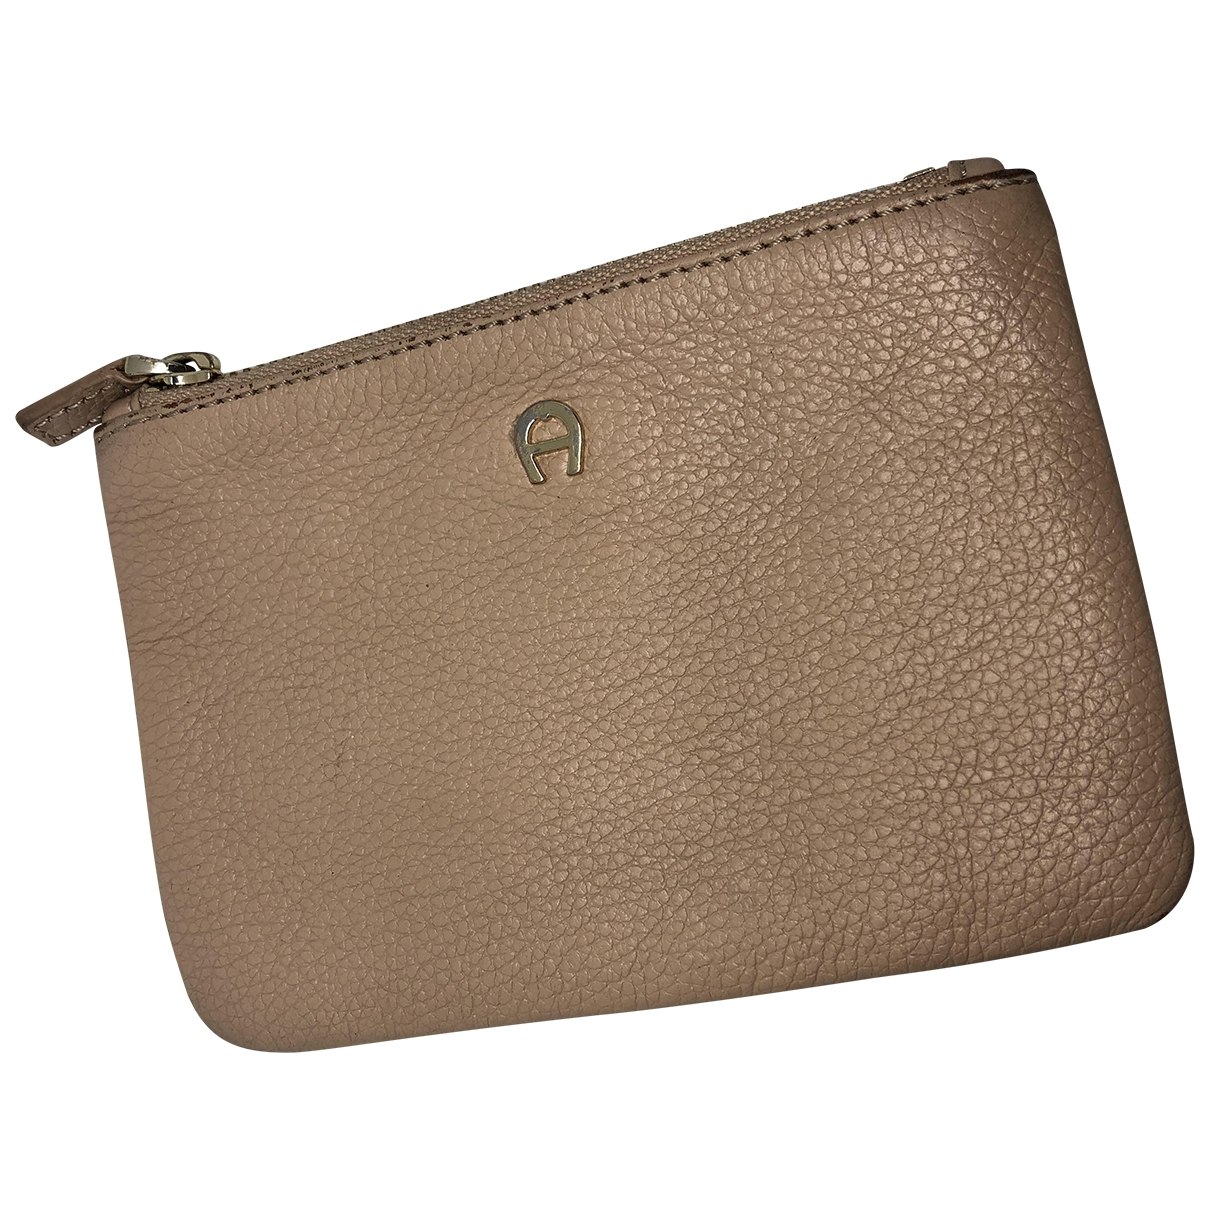 Aigner \N Beige Leather Purses, wallet & cases for Women \N